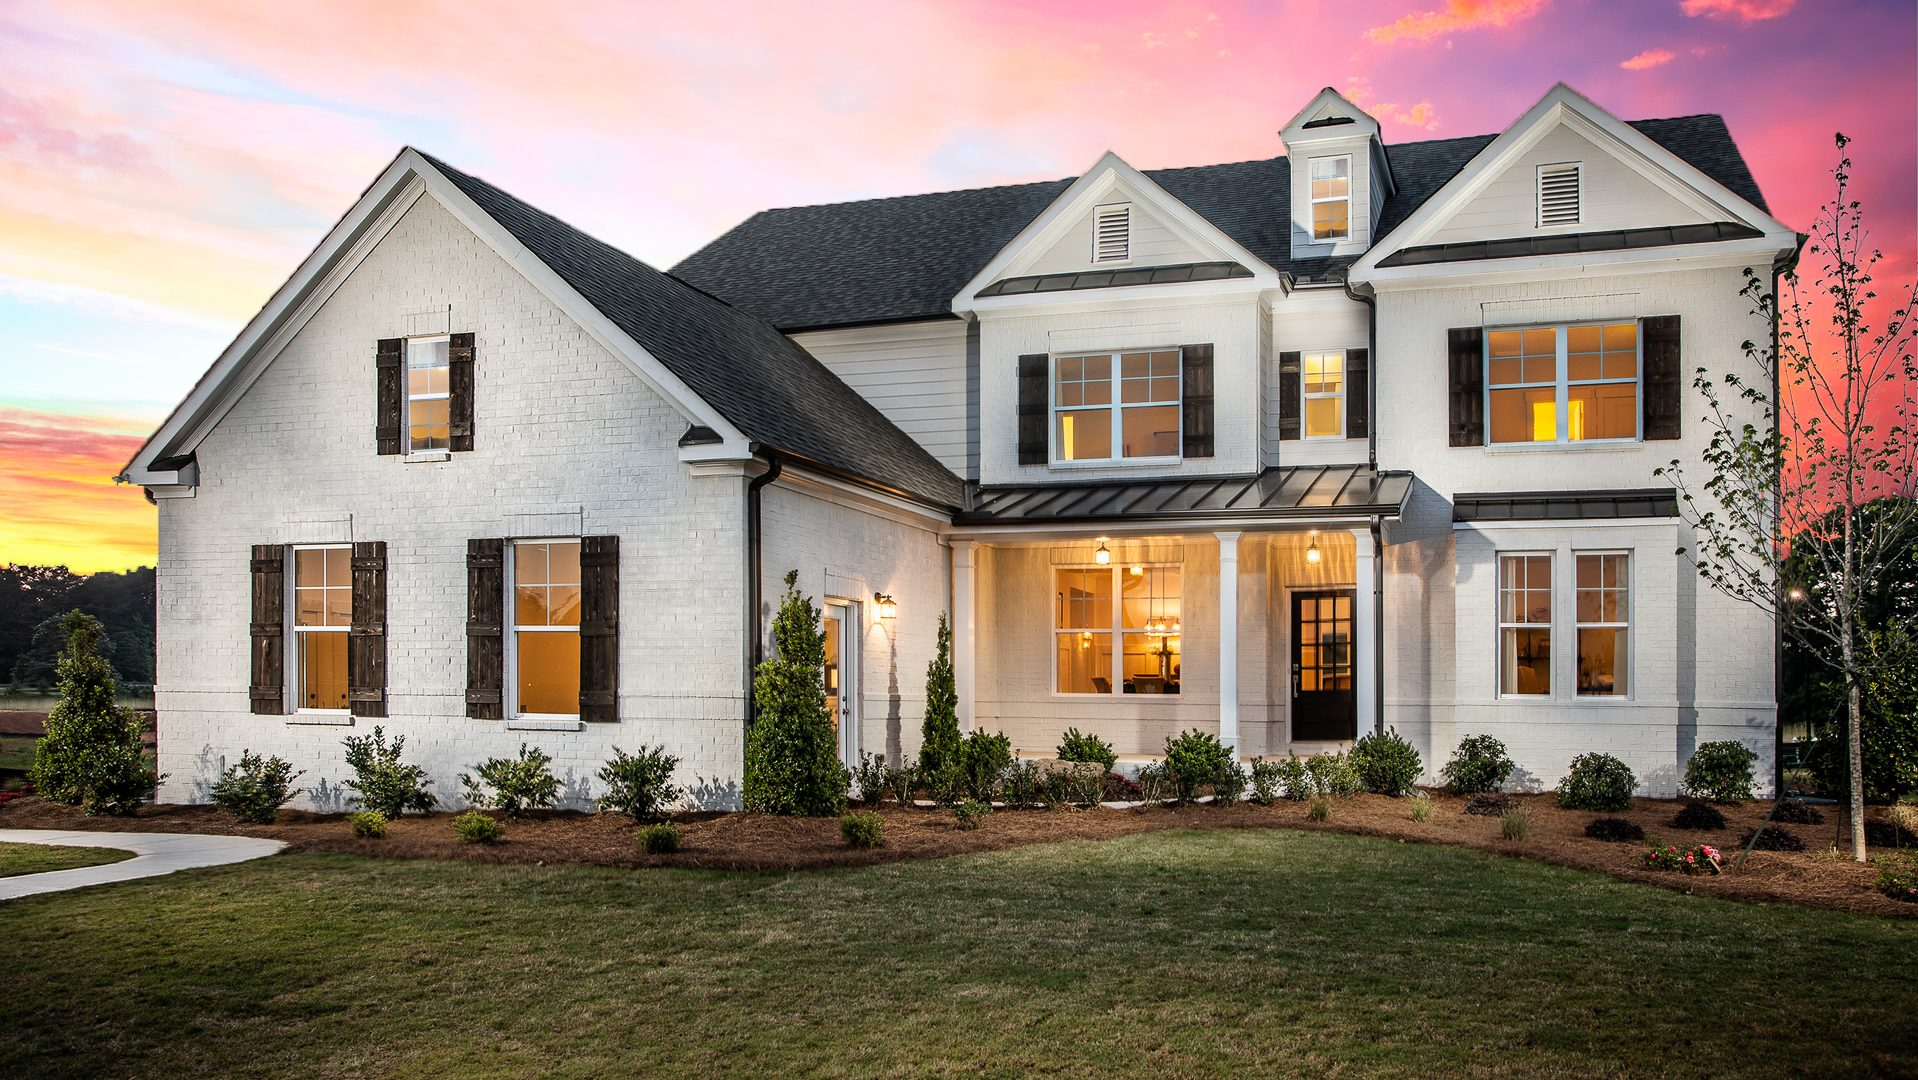 Getting Top Dollar When Selling – Curb Appeal!